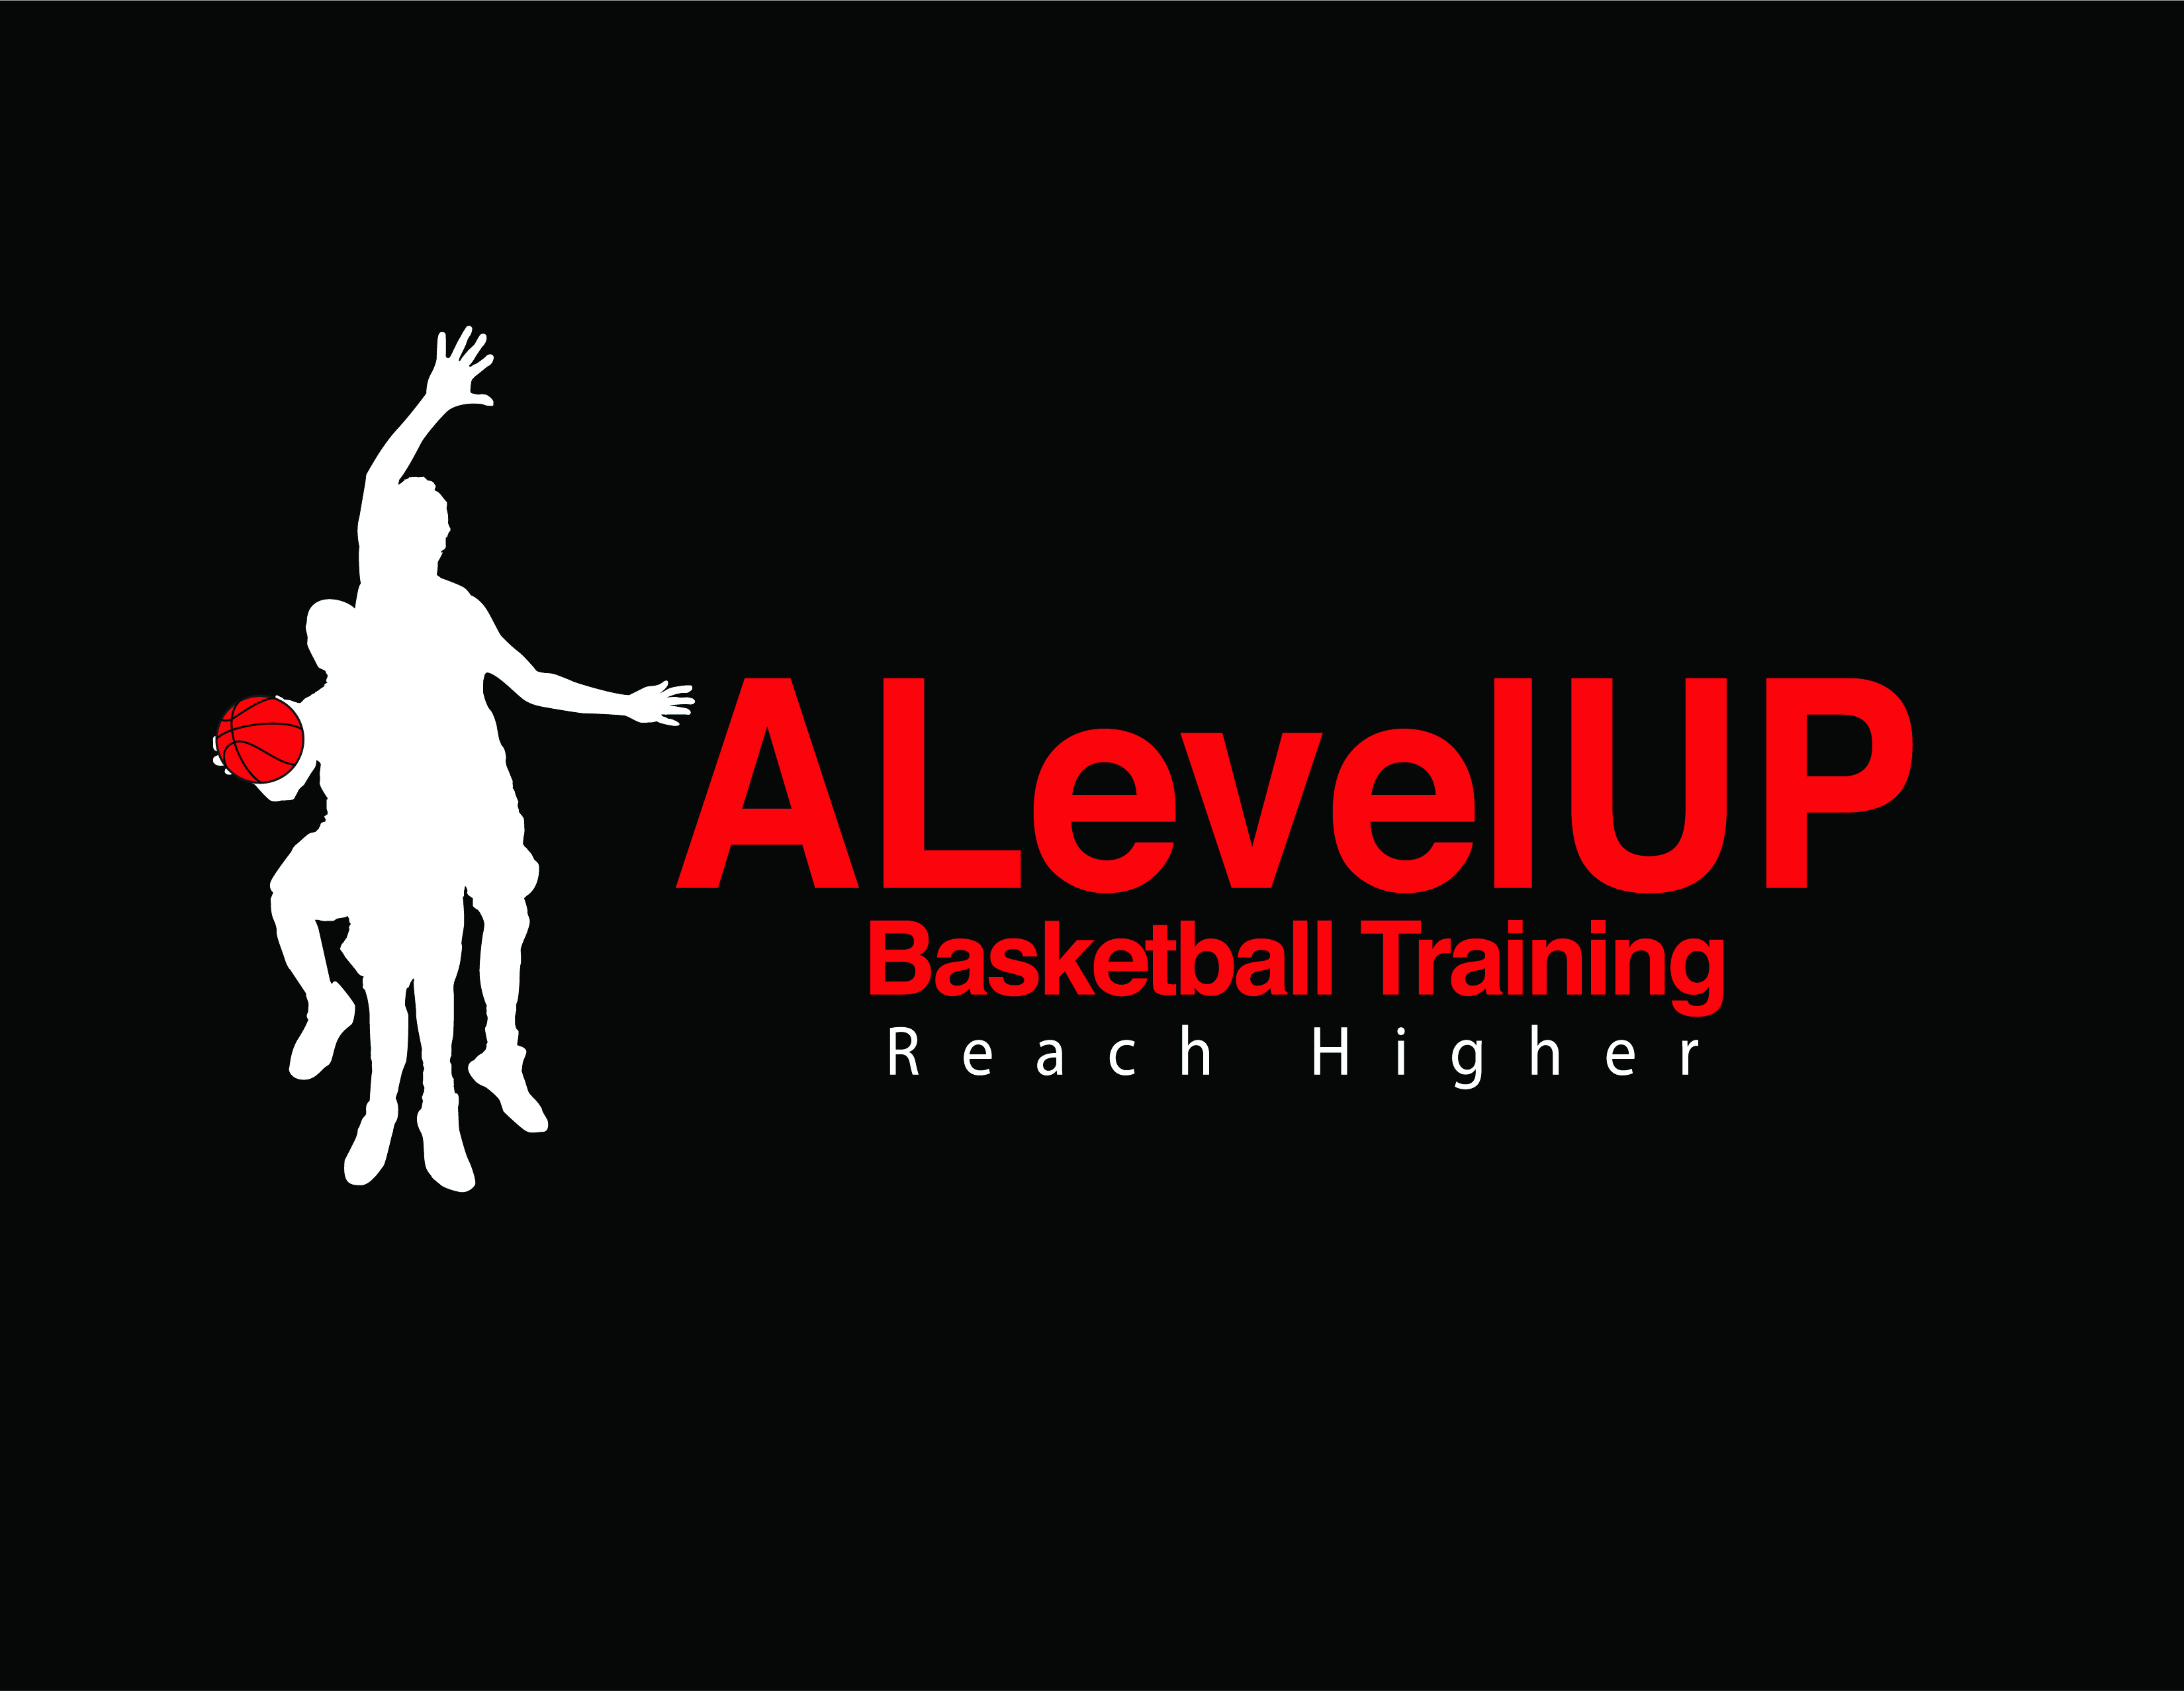 AlevelUp Basketball Training reviews, opinions and consumer feedback